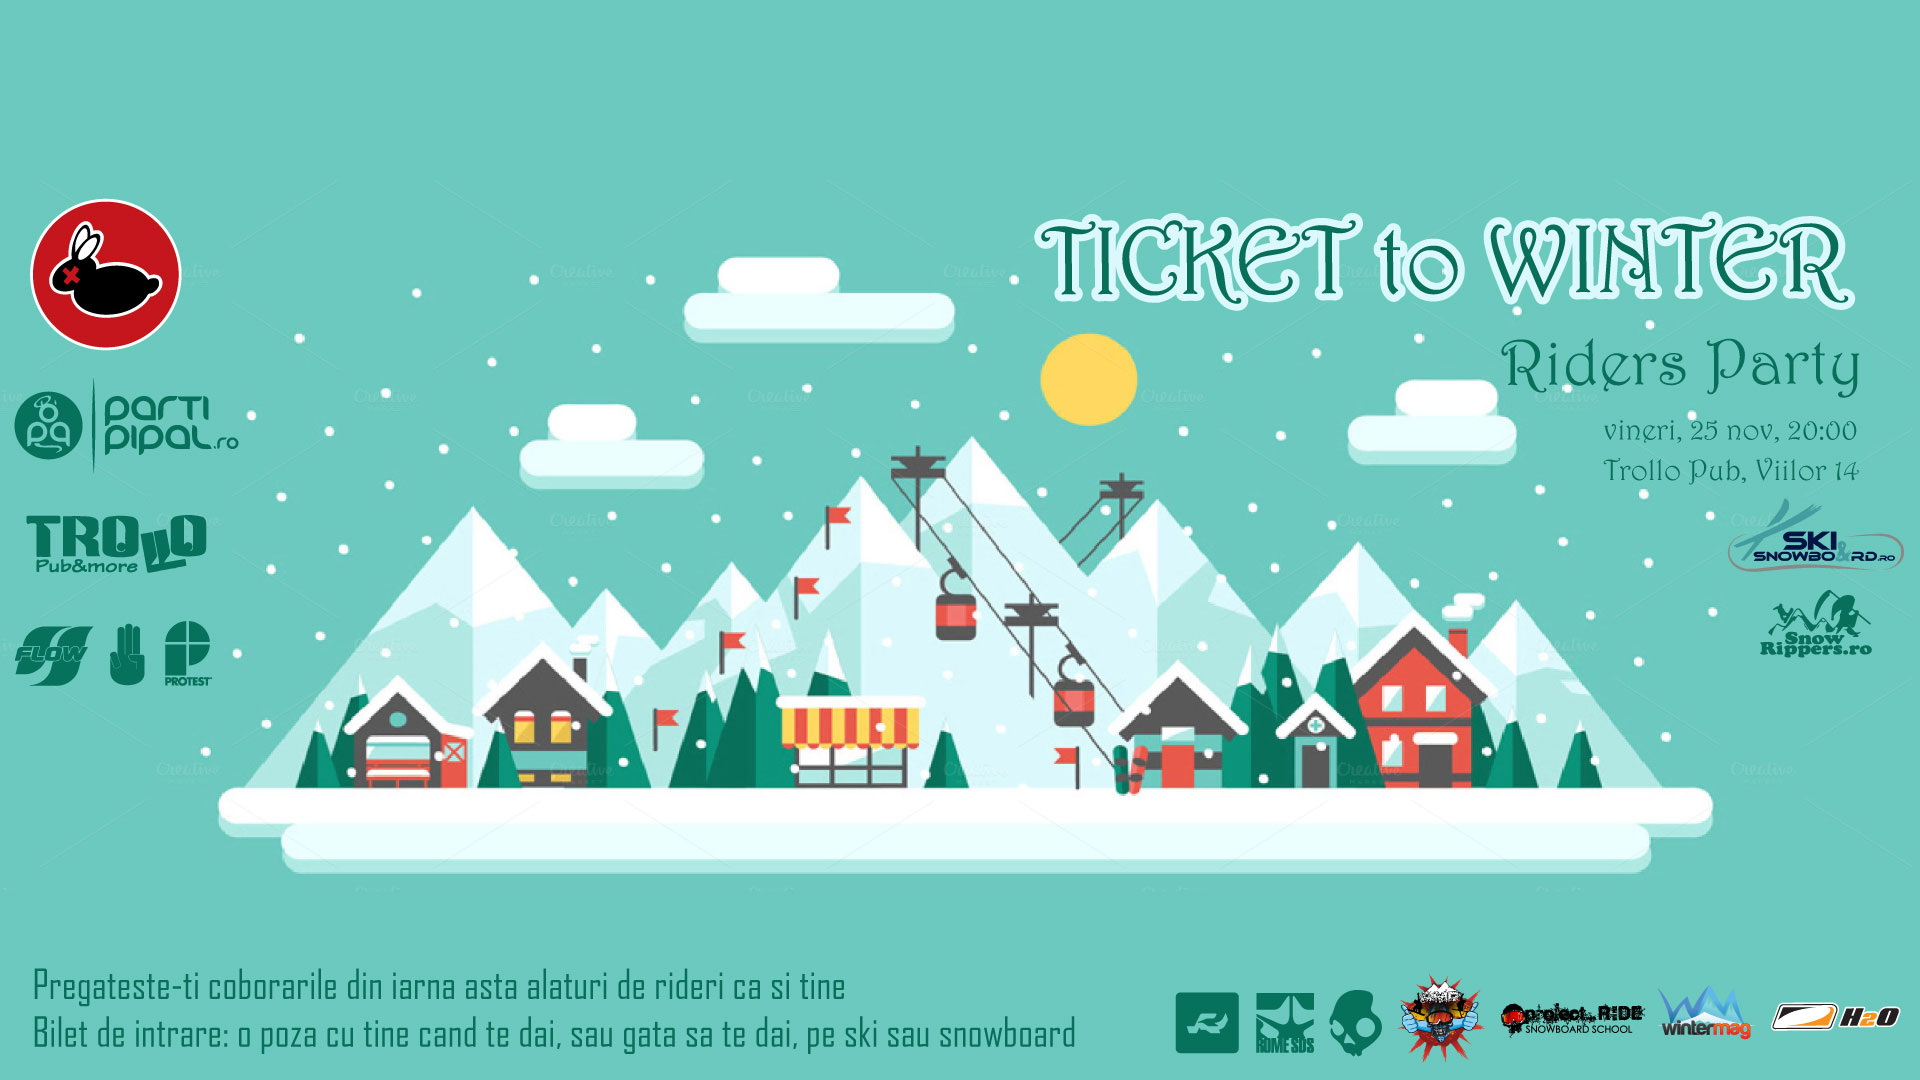 fresh-meat-sss-ticket-to-winter-riders-party-fresh-meat-ski-si-snowboard-petrecere-inceput-sezon-ski-snowboard-trollo-pub